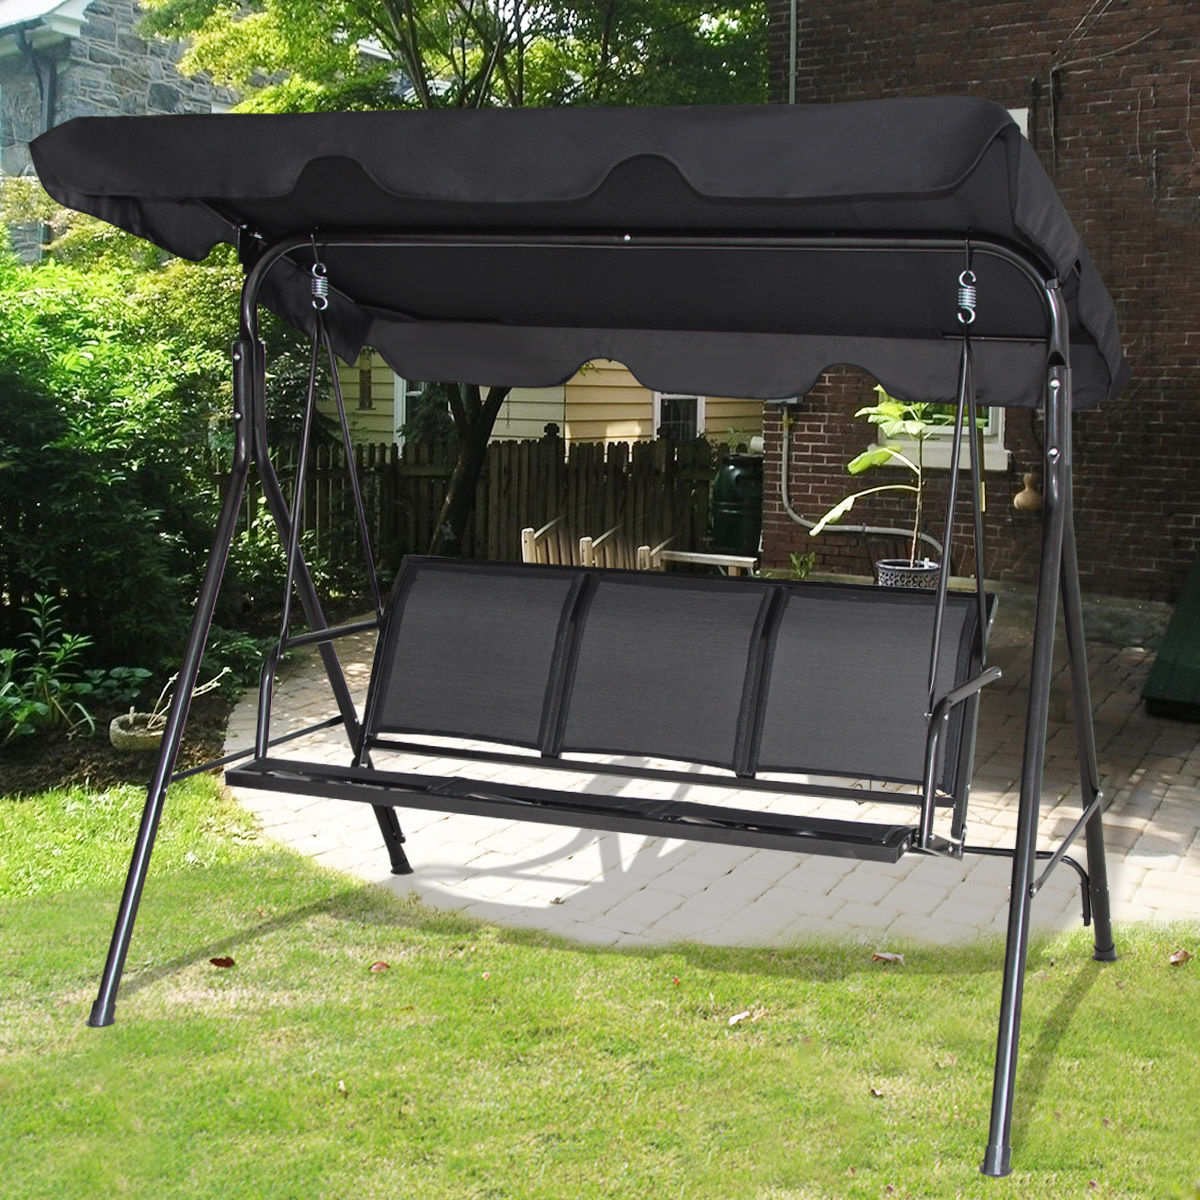 Gymax Black Outdoor Swing Canopy Patio Swing Chair 3 Person Canopy Hammock - image 7 of 7